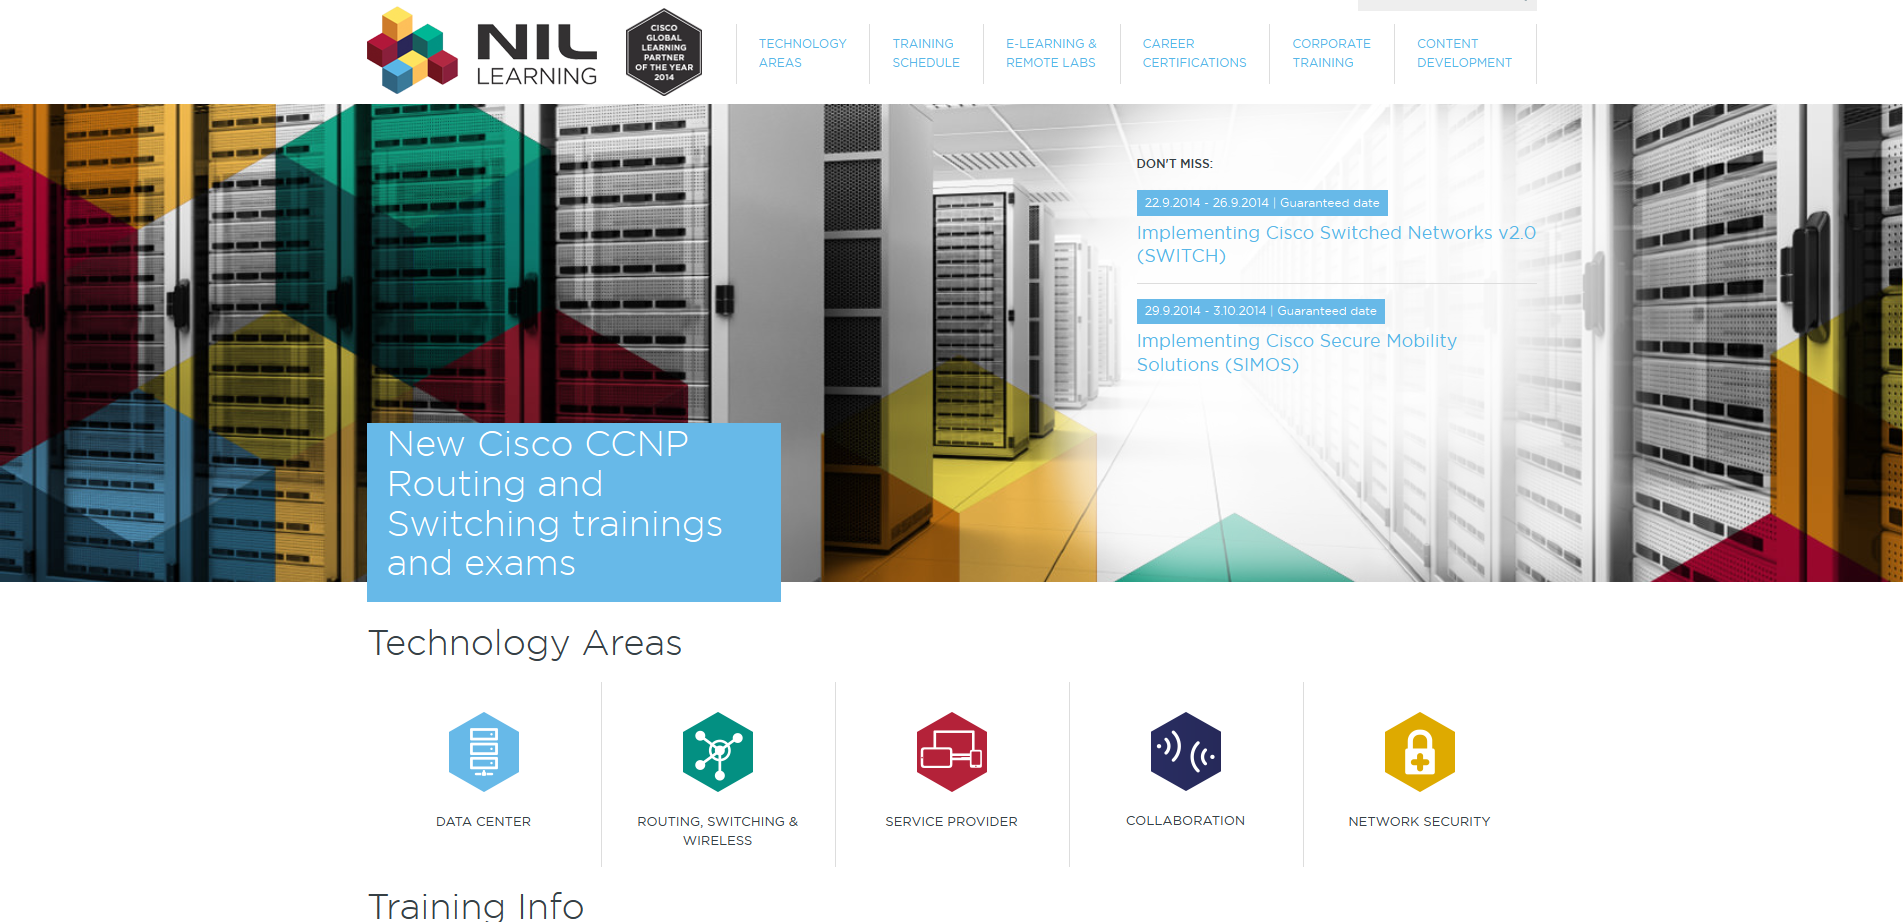 NIL learning (Innovatif)